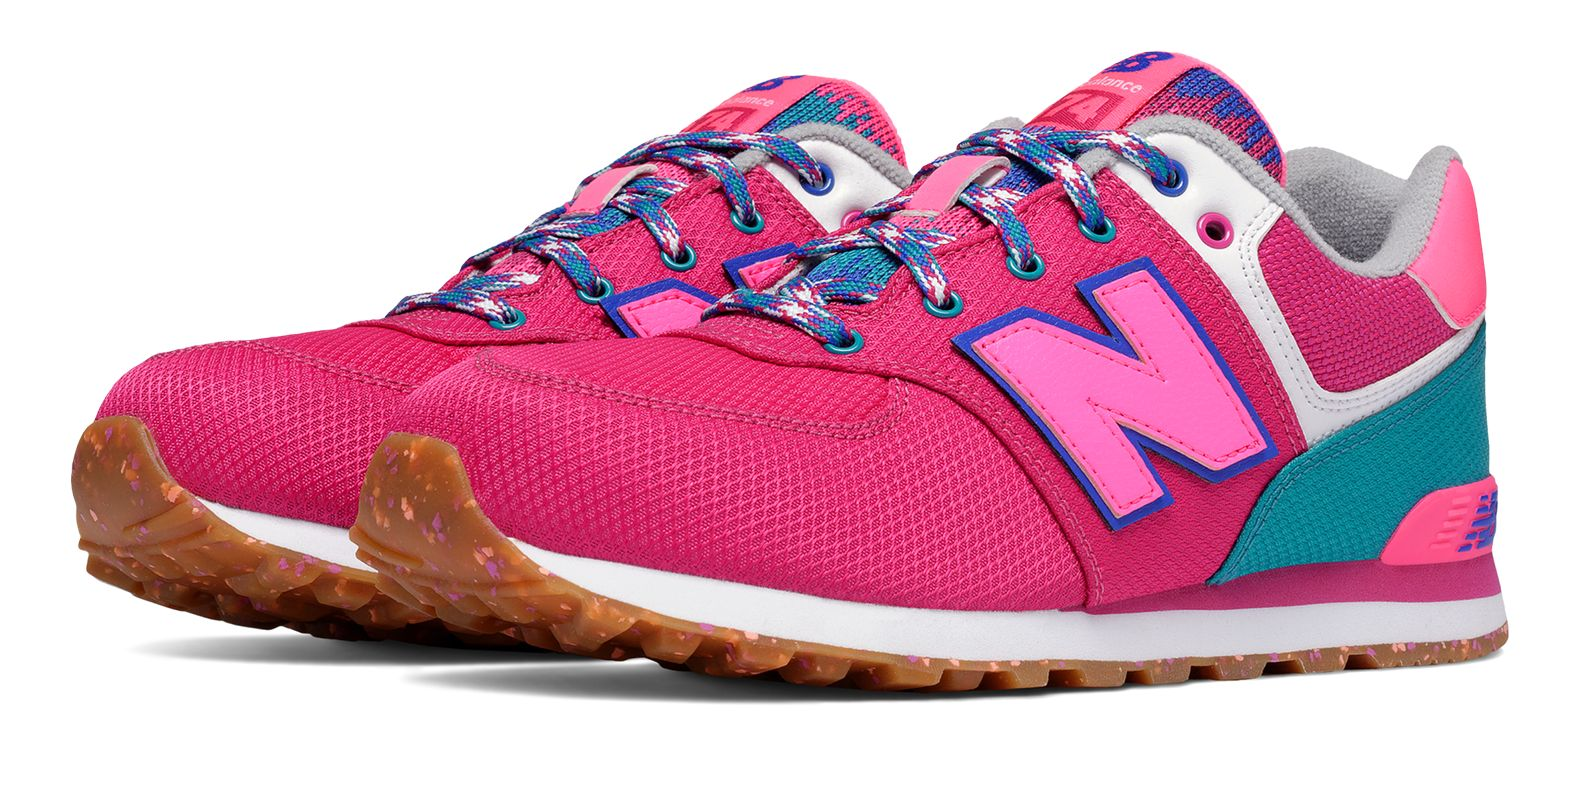 New Balance : 574 Weekend Expedition : Unisex Girls' Outlet : KL574T4G